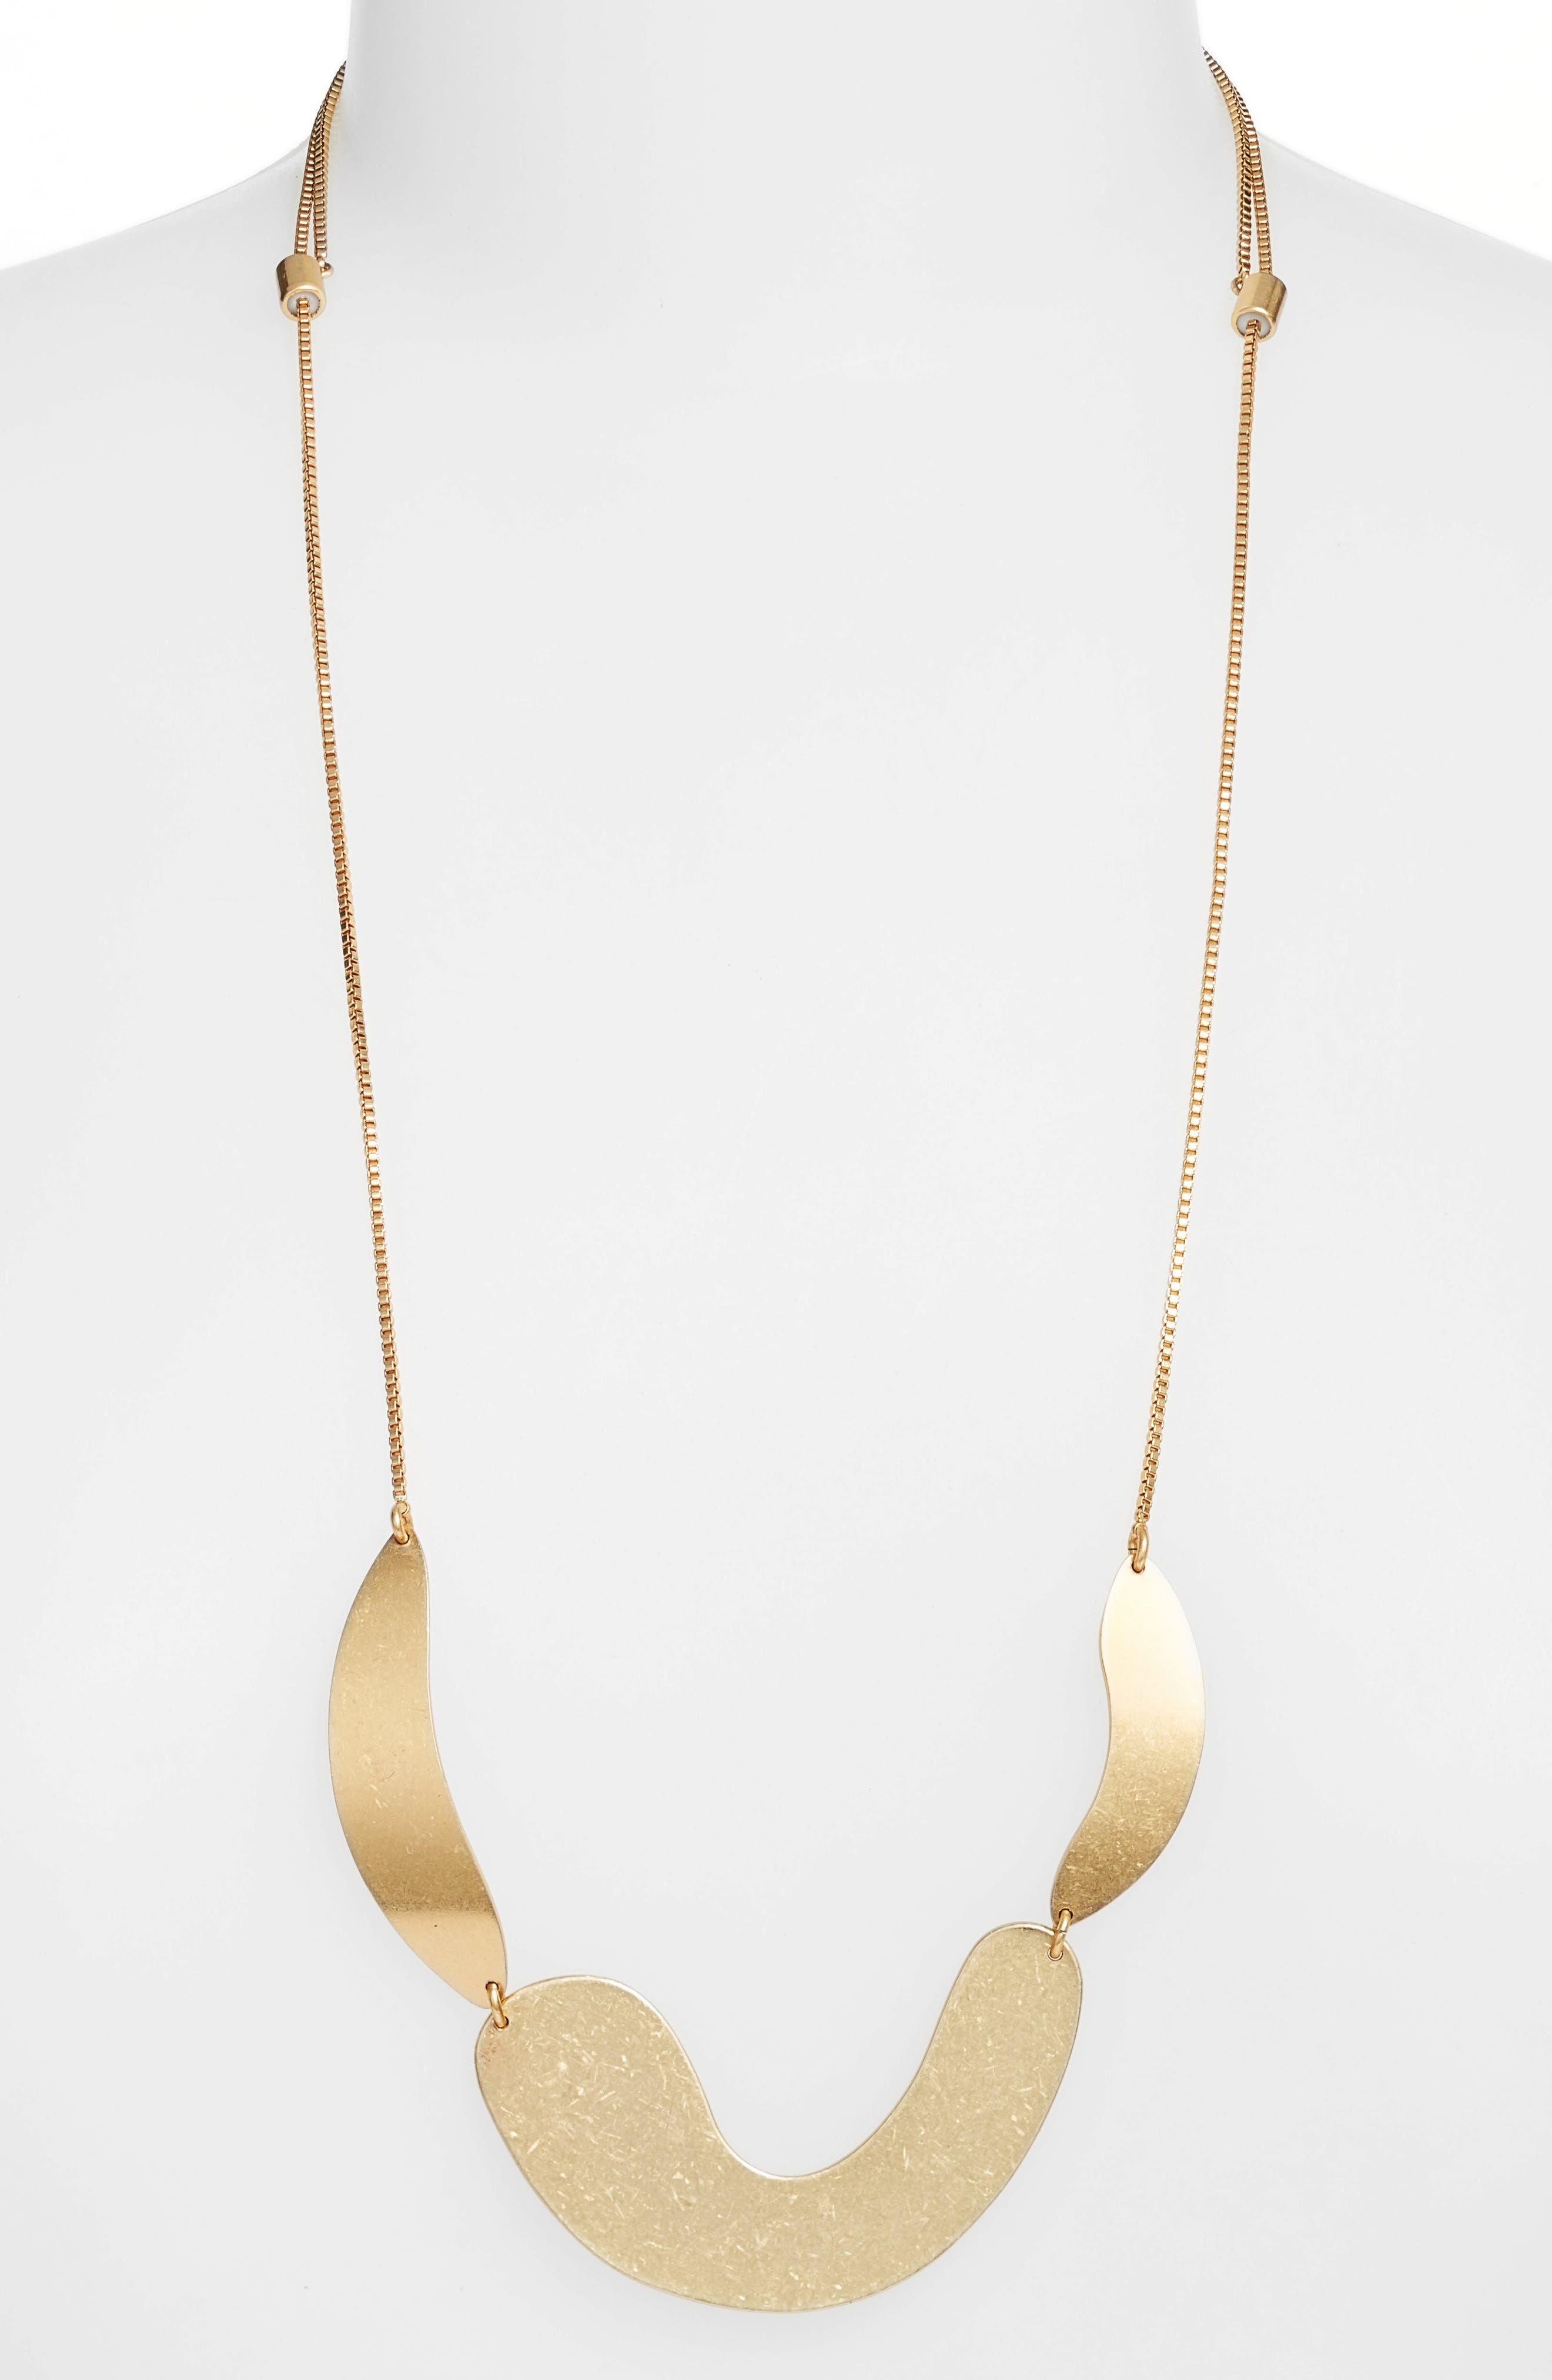 Madewell Fluid Shapes Pendant Necklace